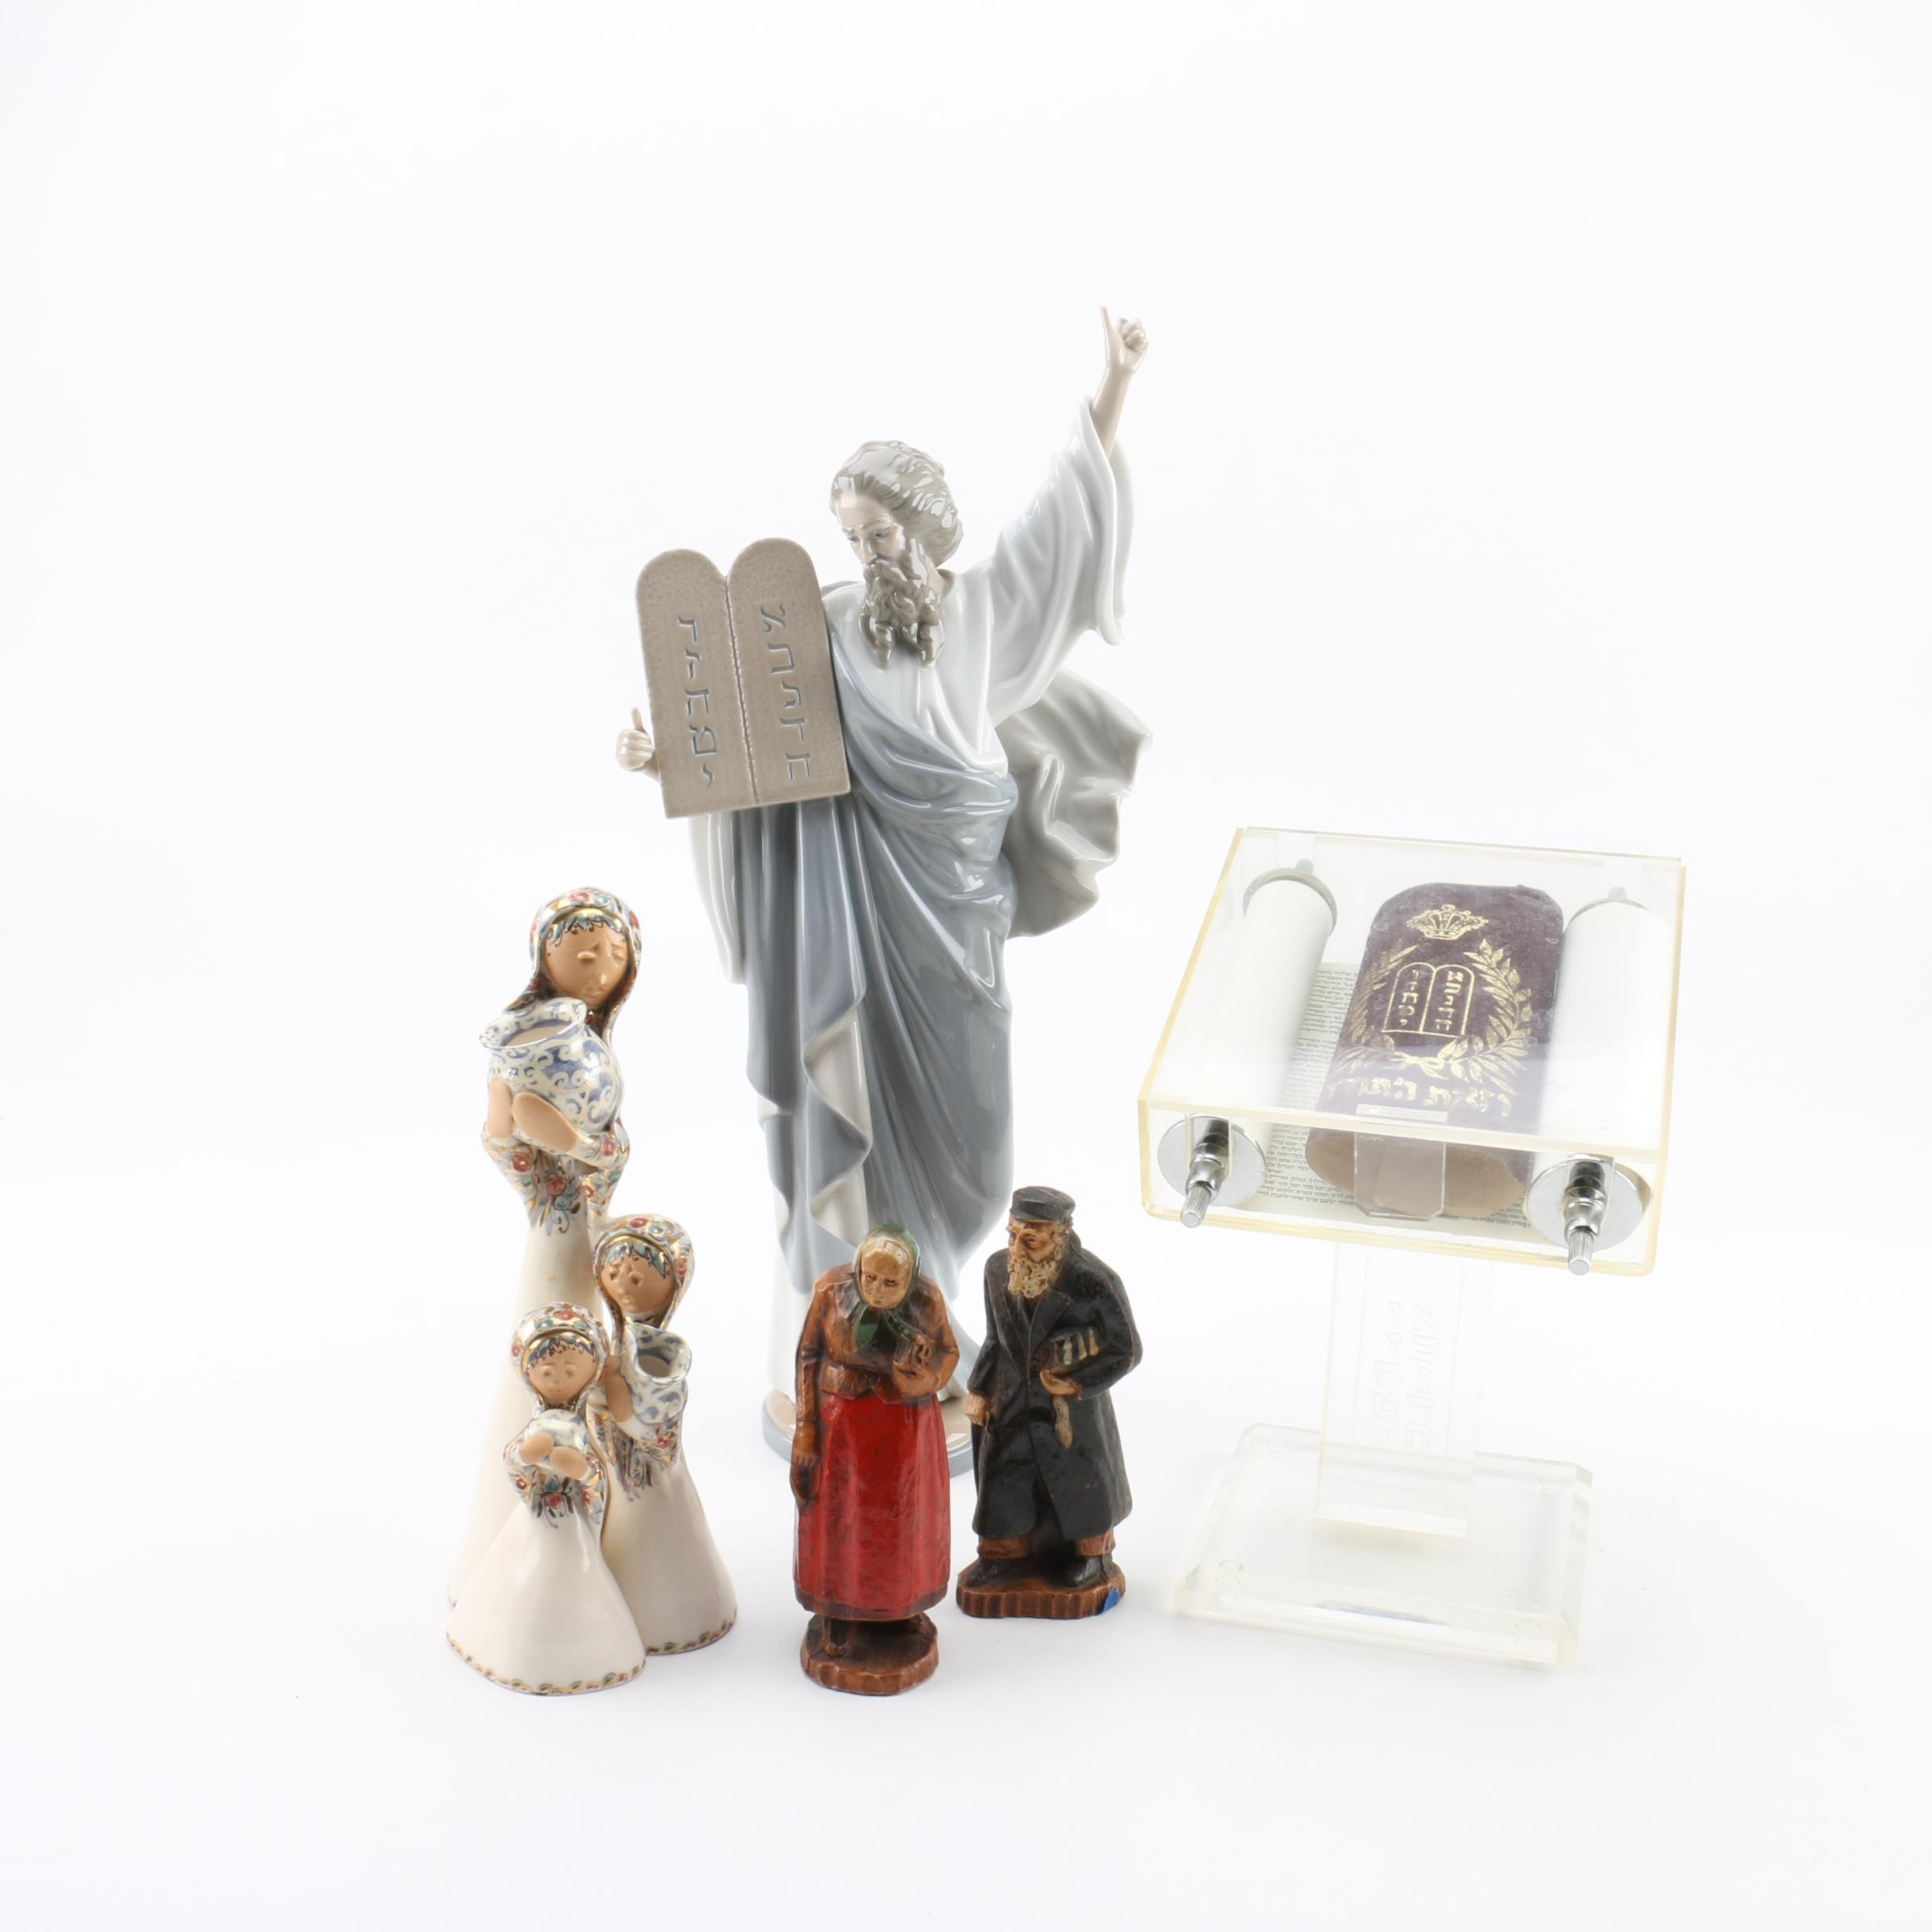 Lladro Porcelain Figurine with Related Religious Items